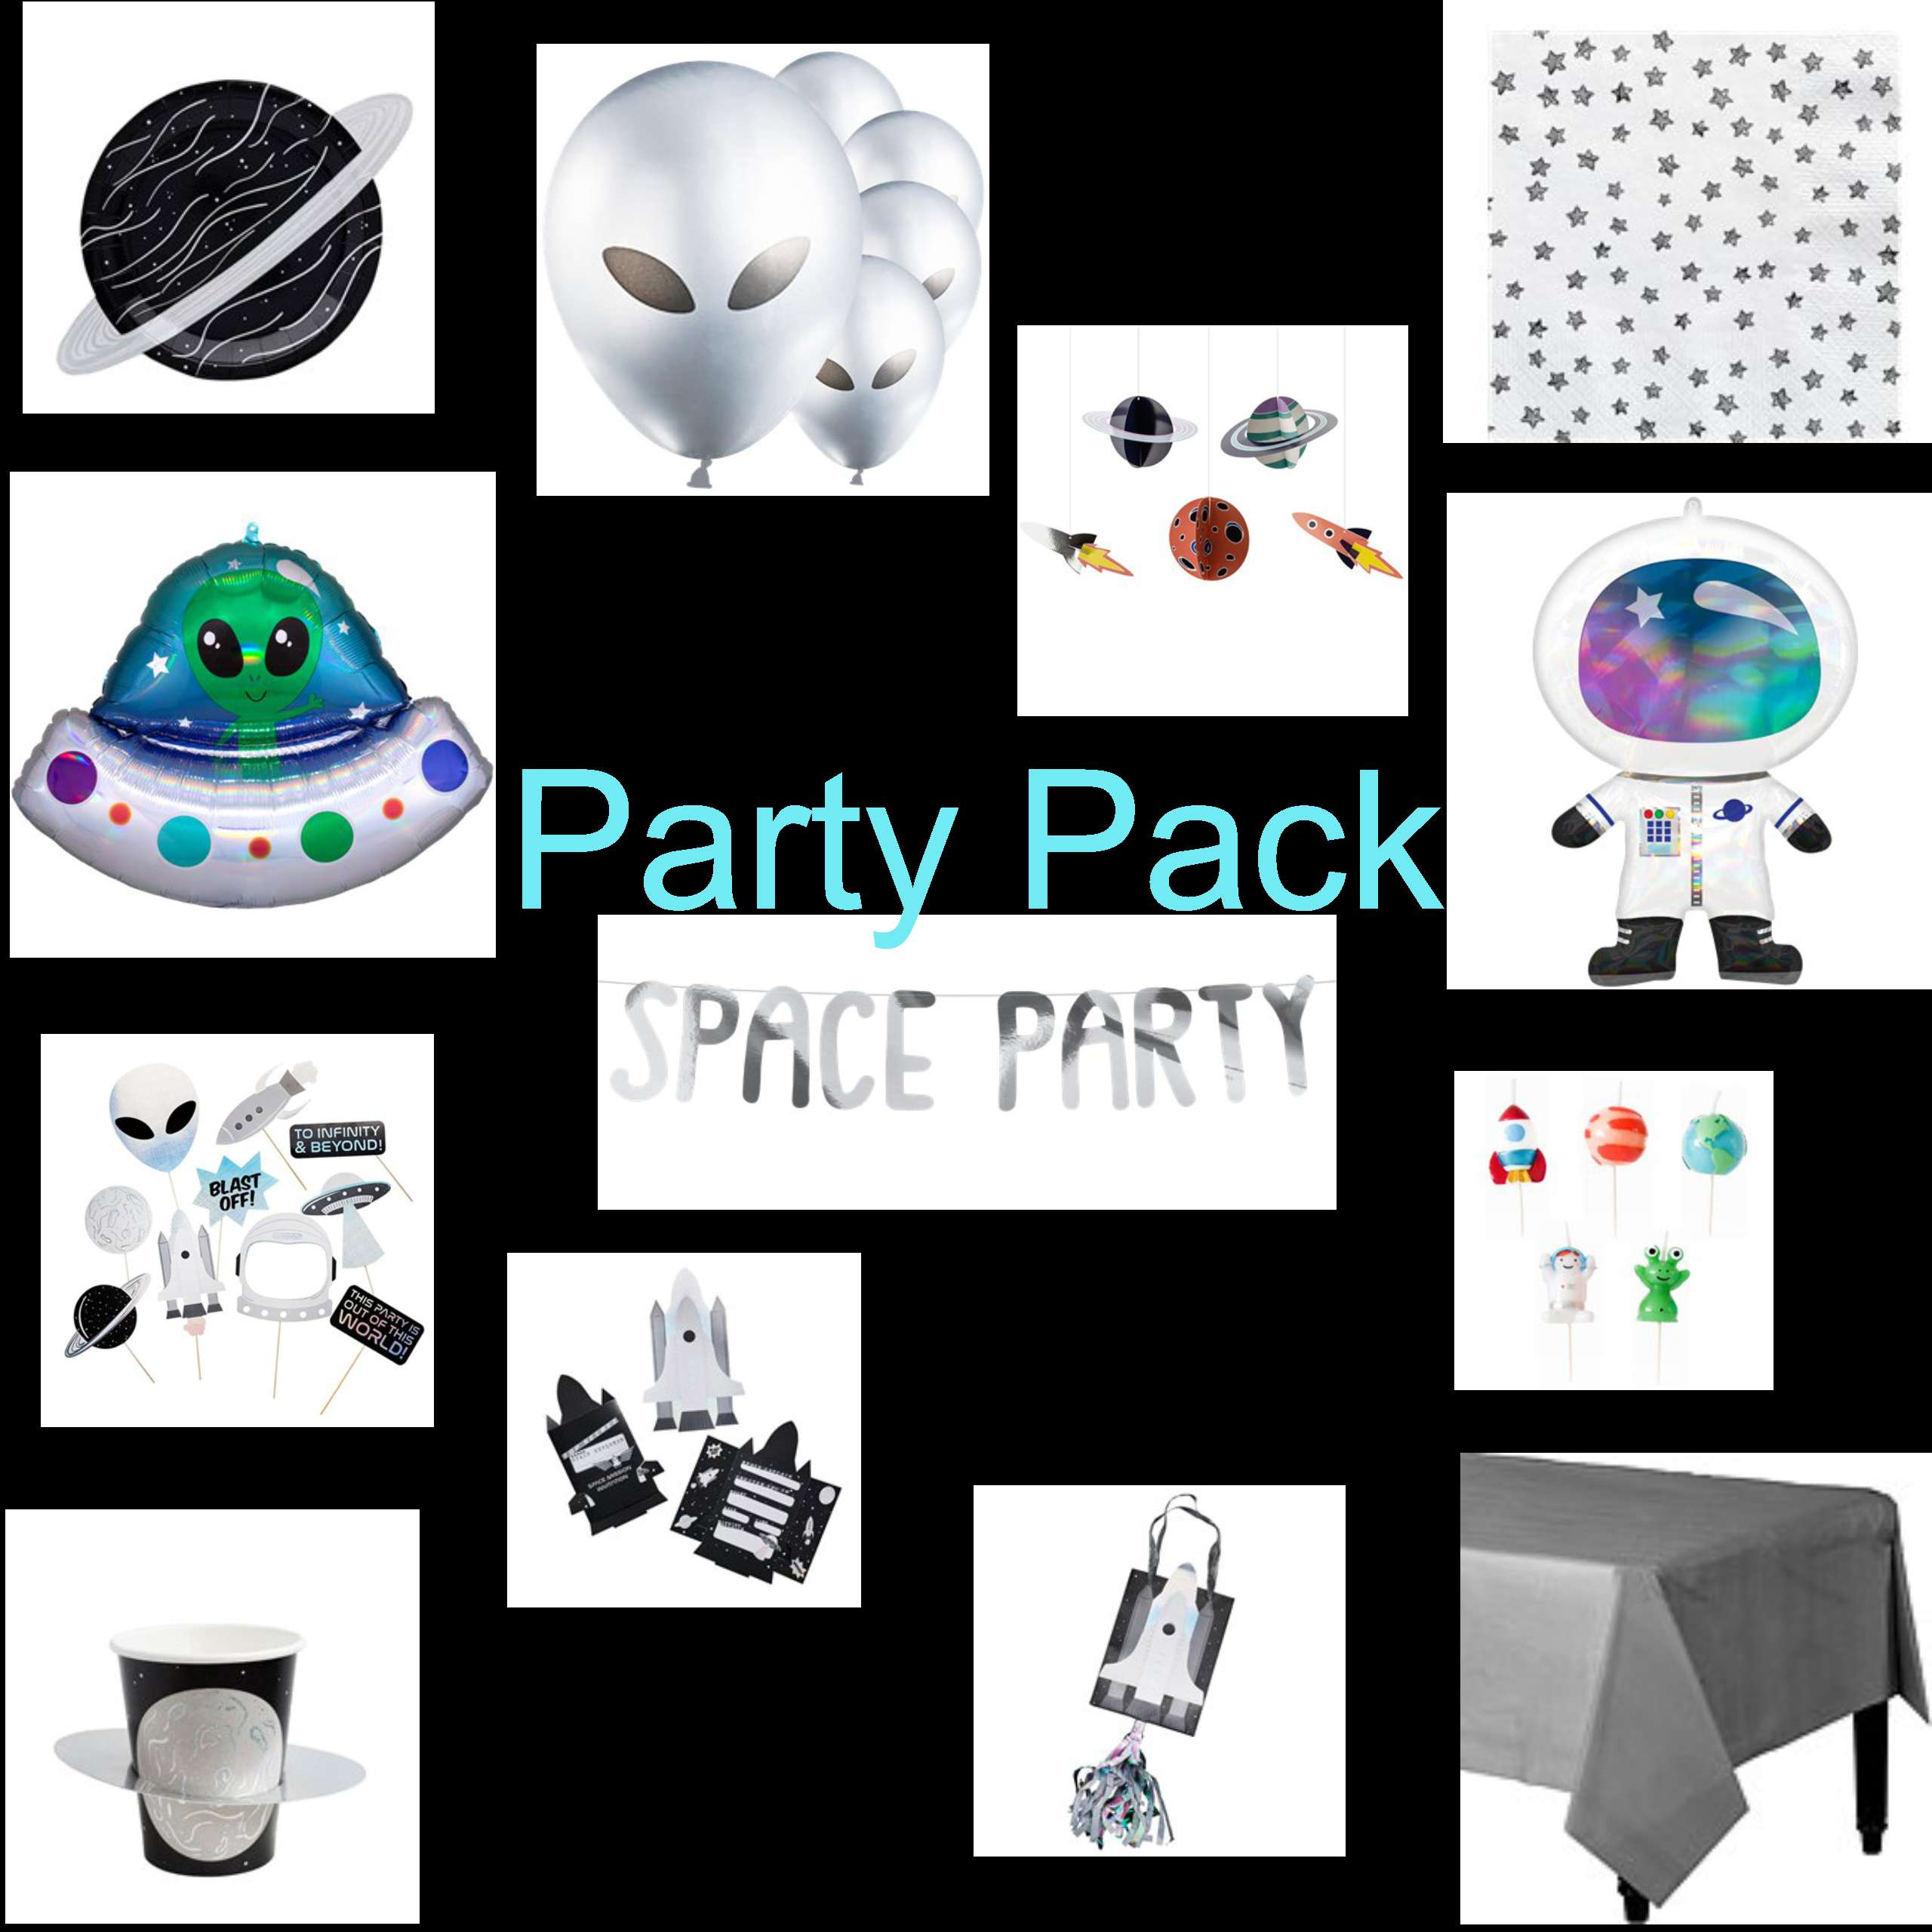 Space Party Pack